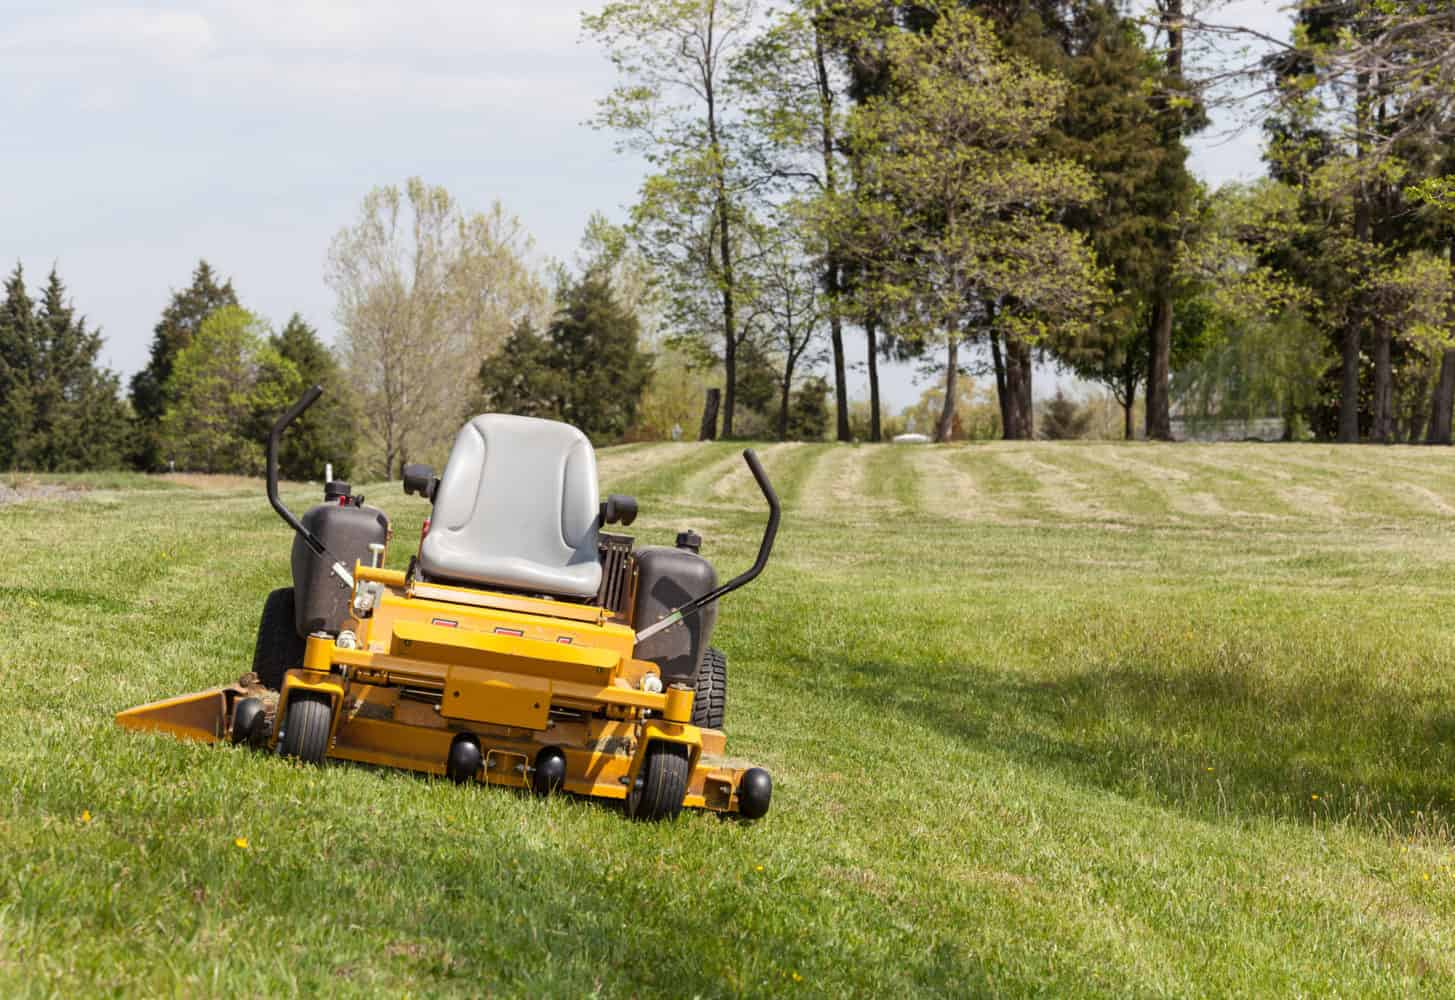 Zero Turn mower vs Lawn Tractor